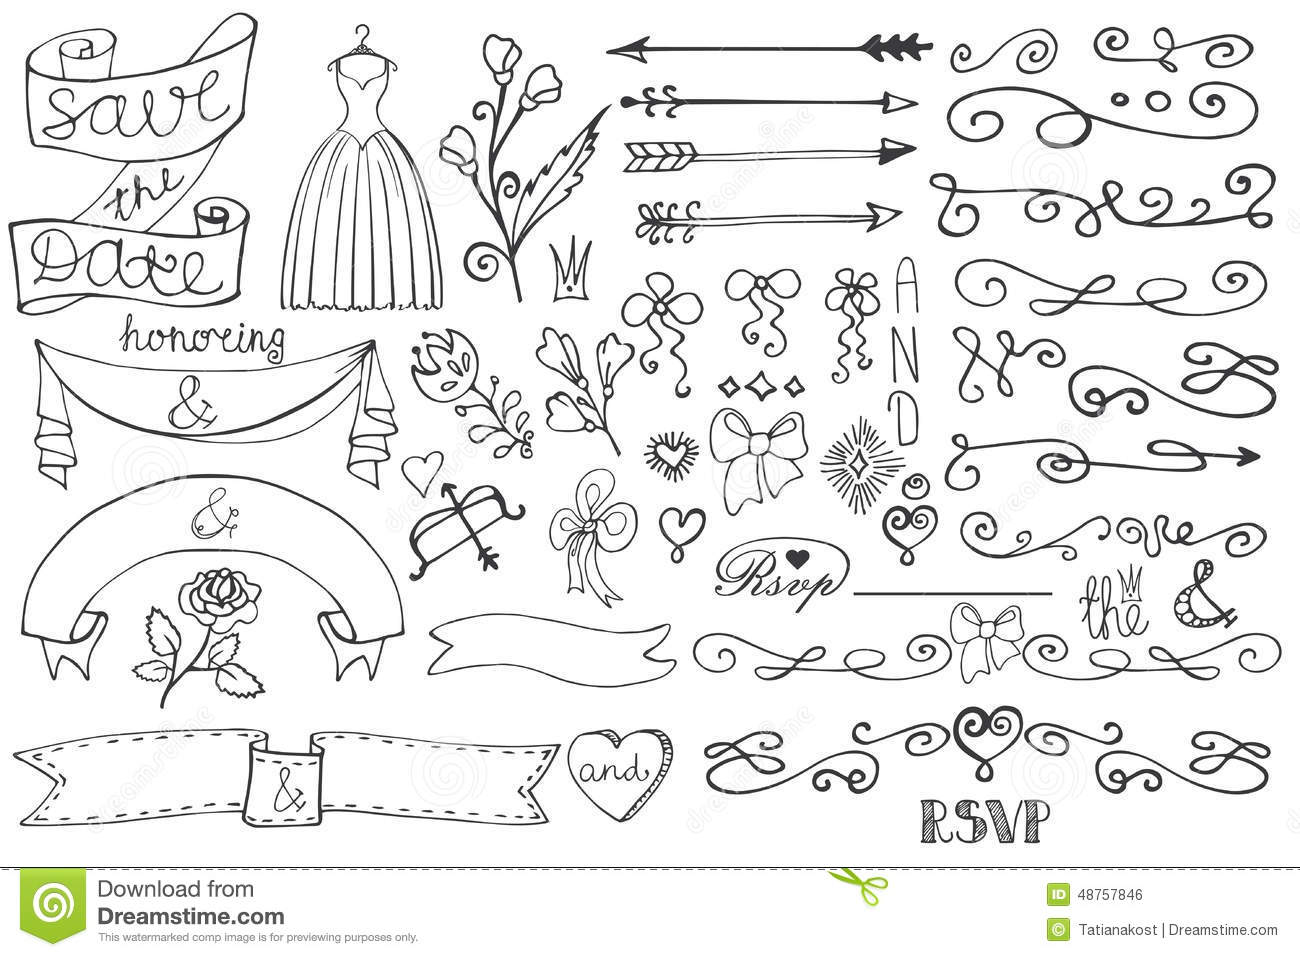 Clothing DIY The dress Dresses Sewing Pattern cutting